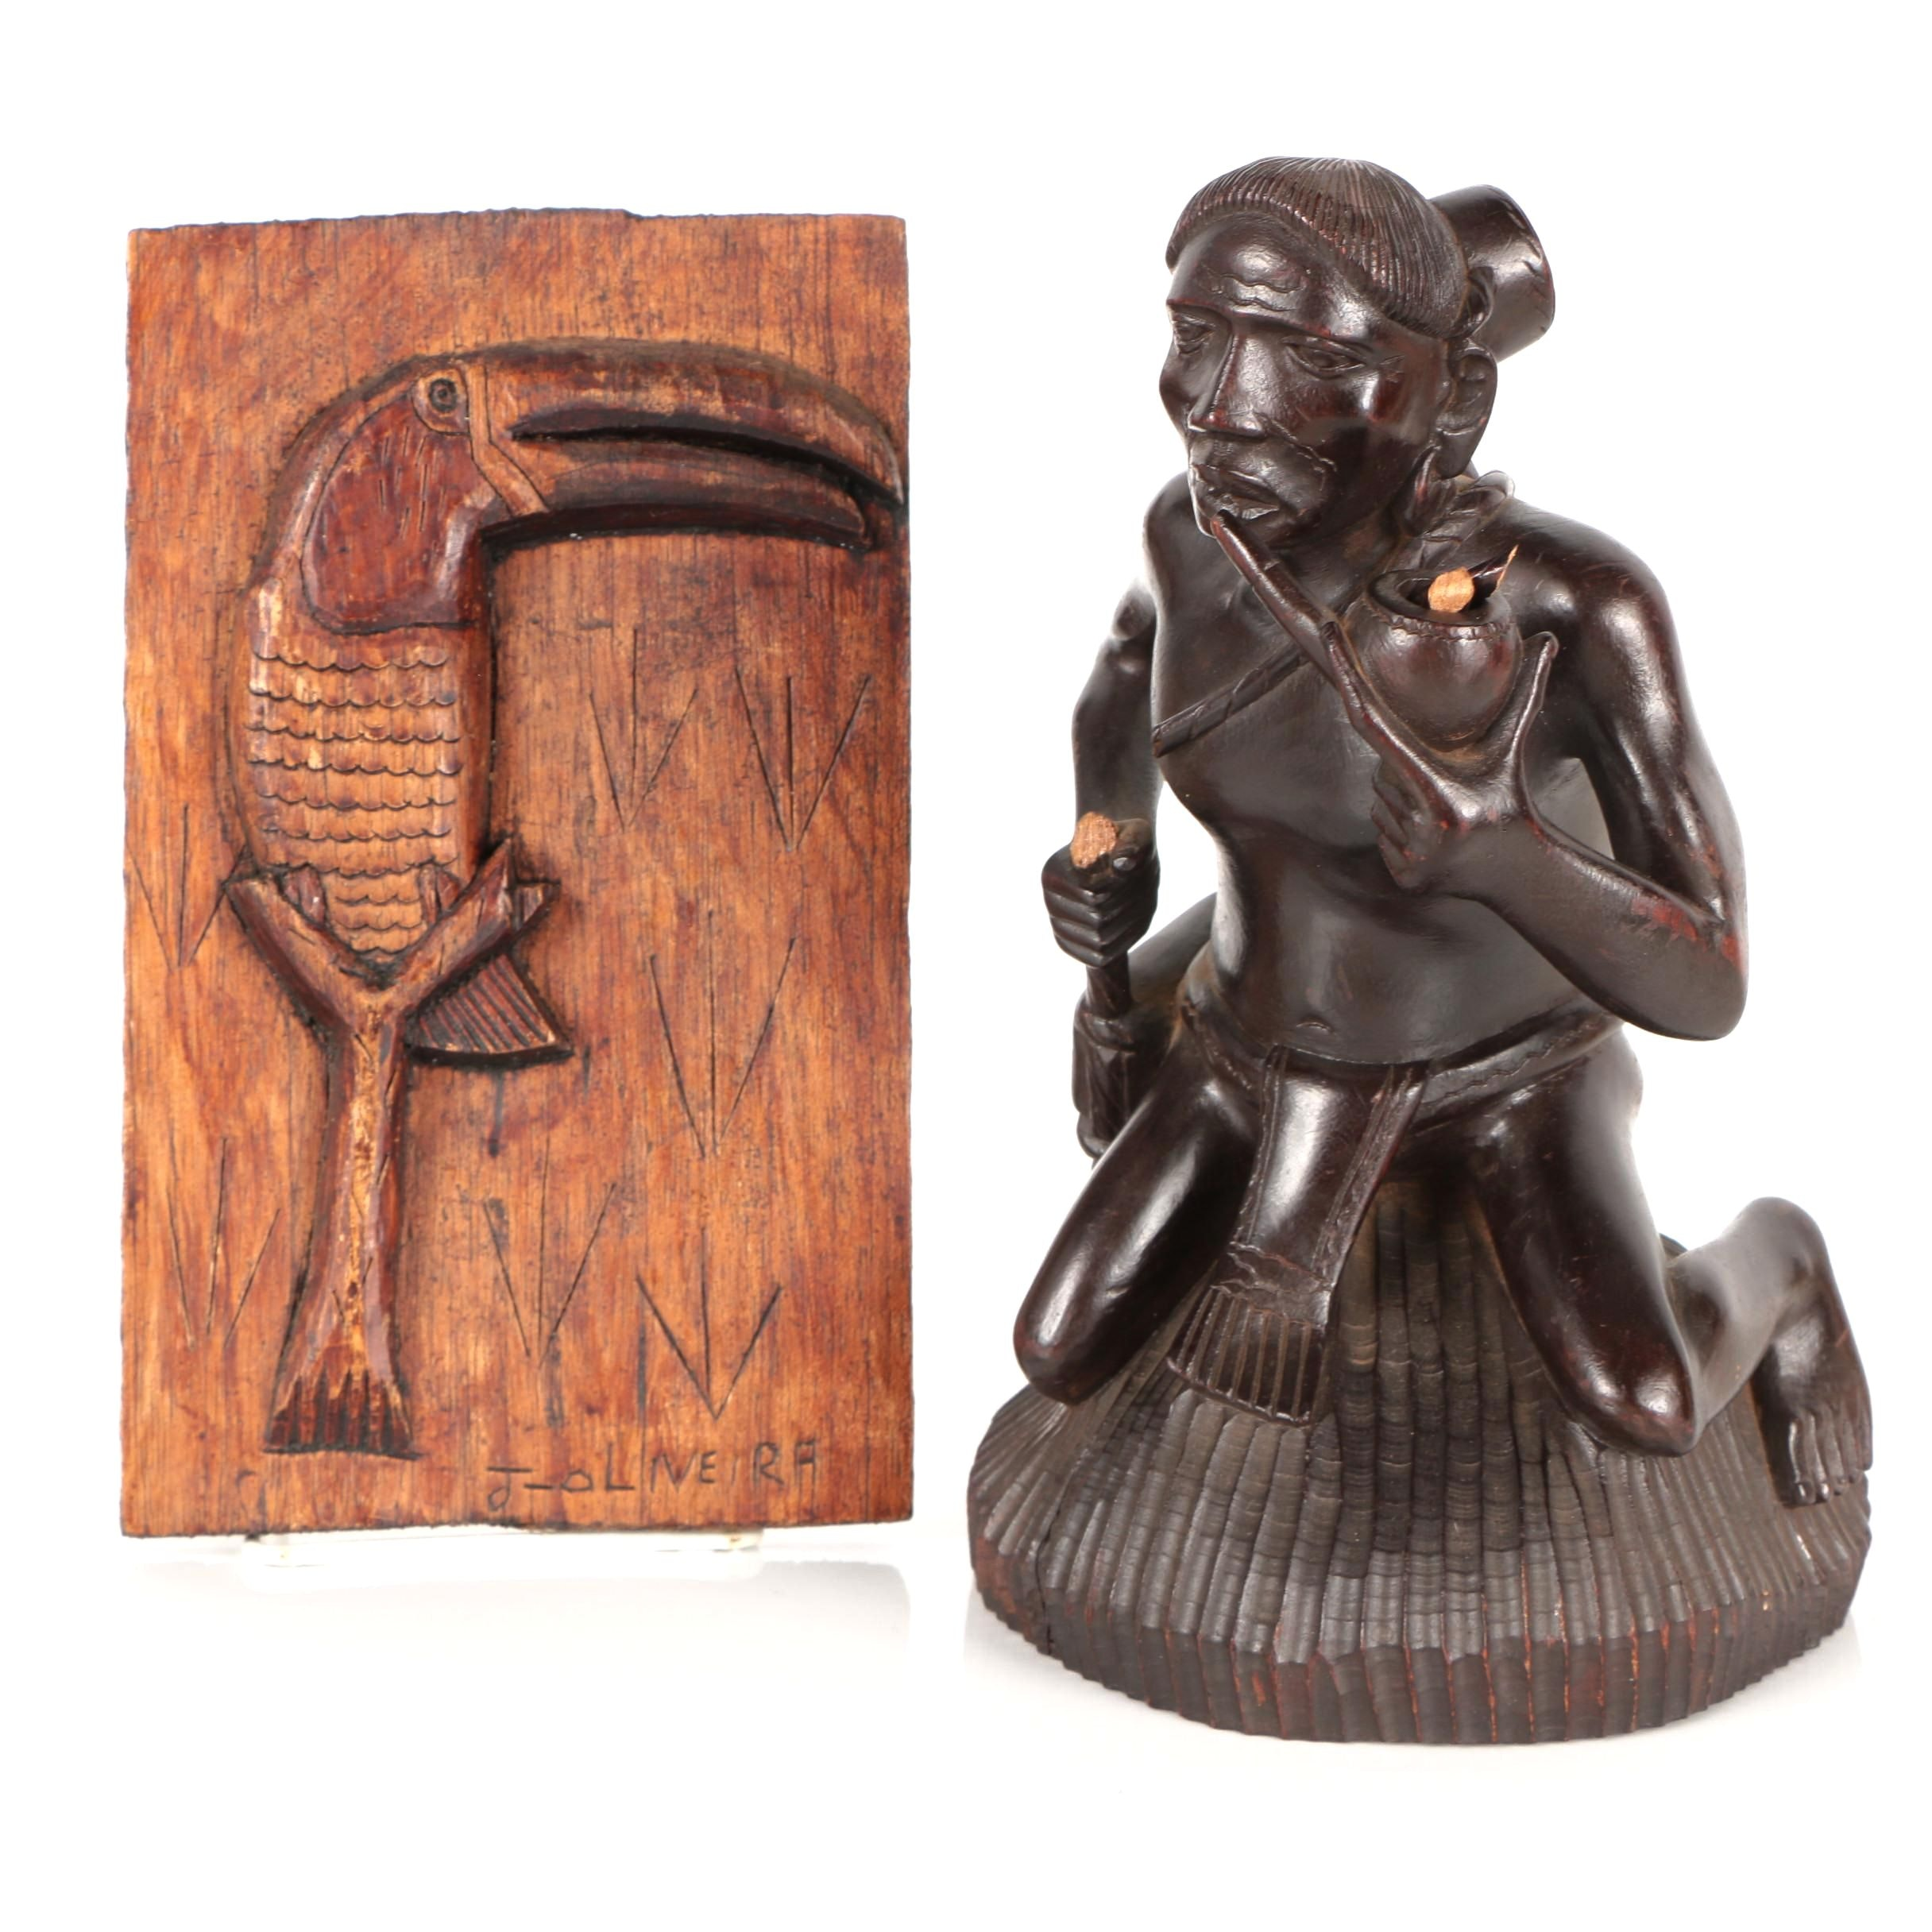 Hand-Carved Wooden Plaque and Figurine